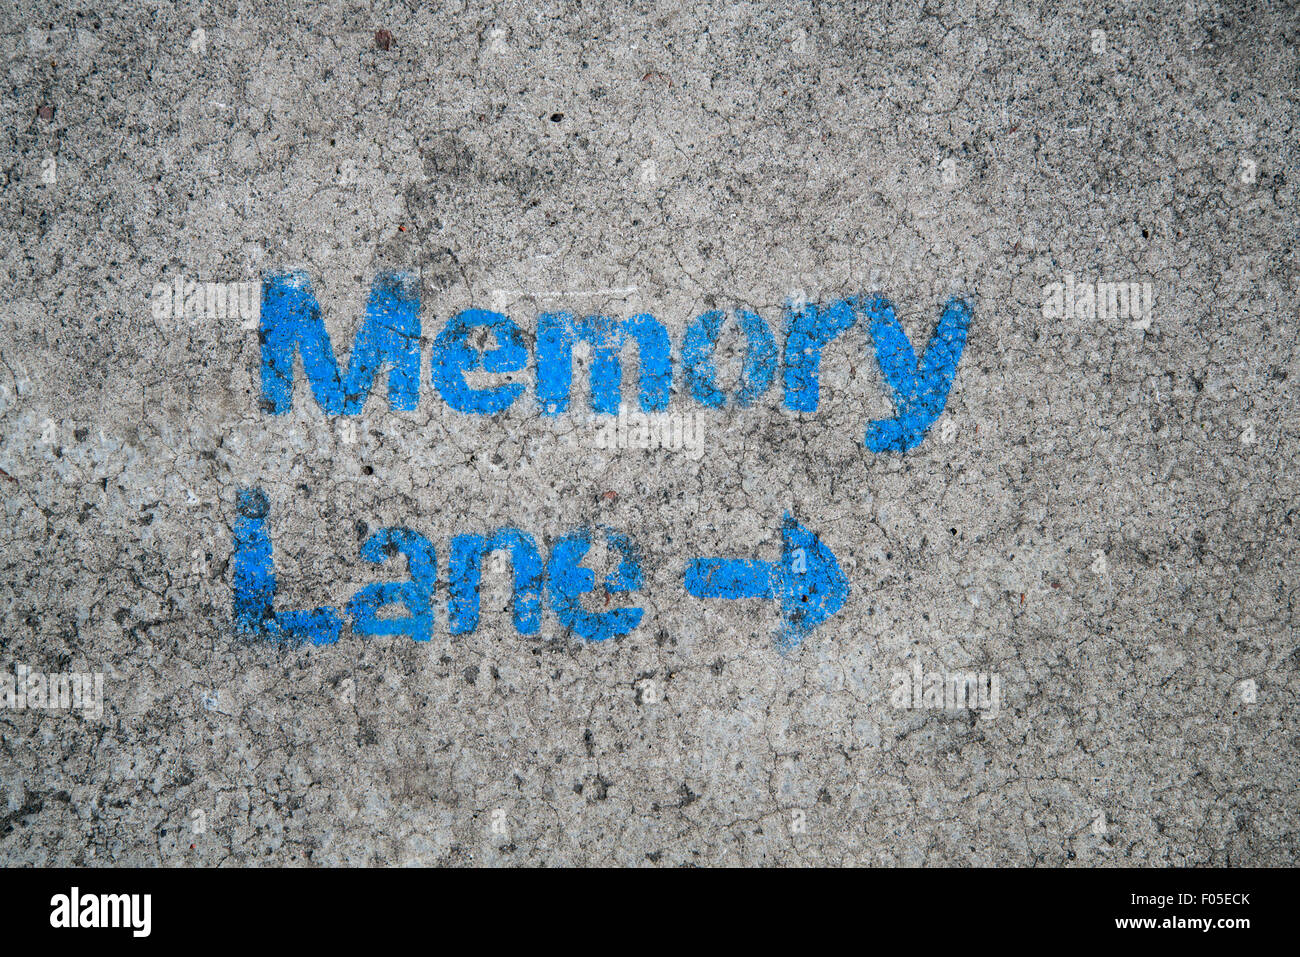 The words 'Memory Lane' stenciled on the pavement. - Stock Image